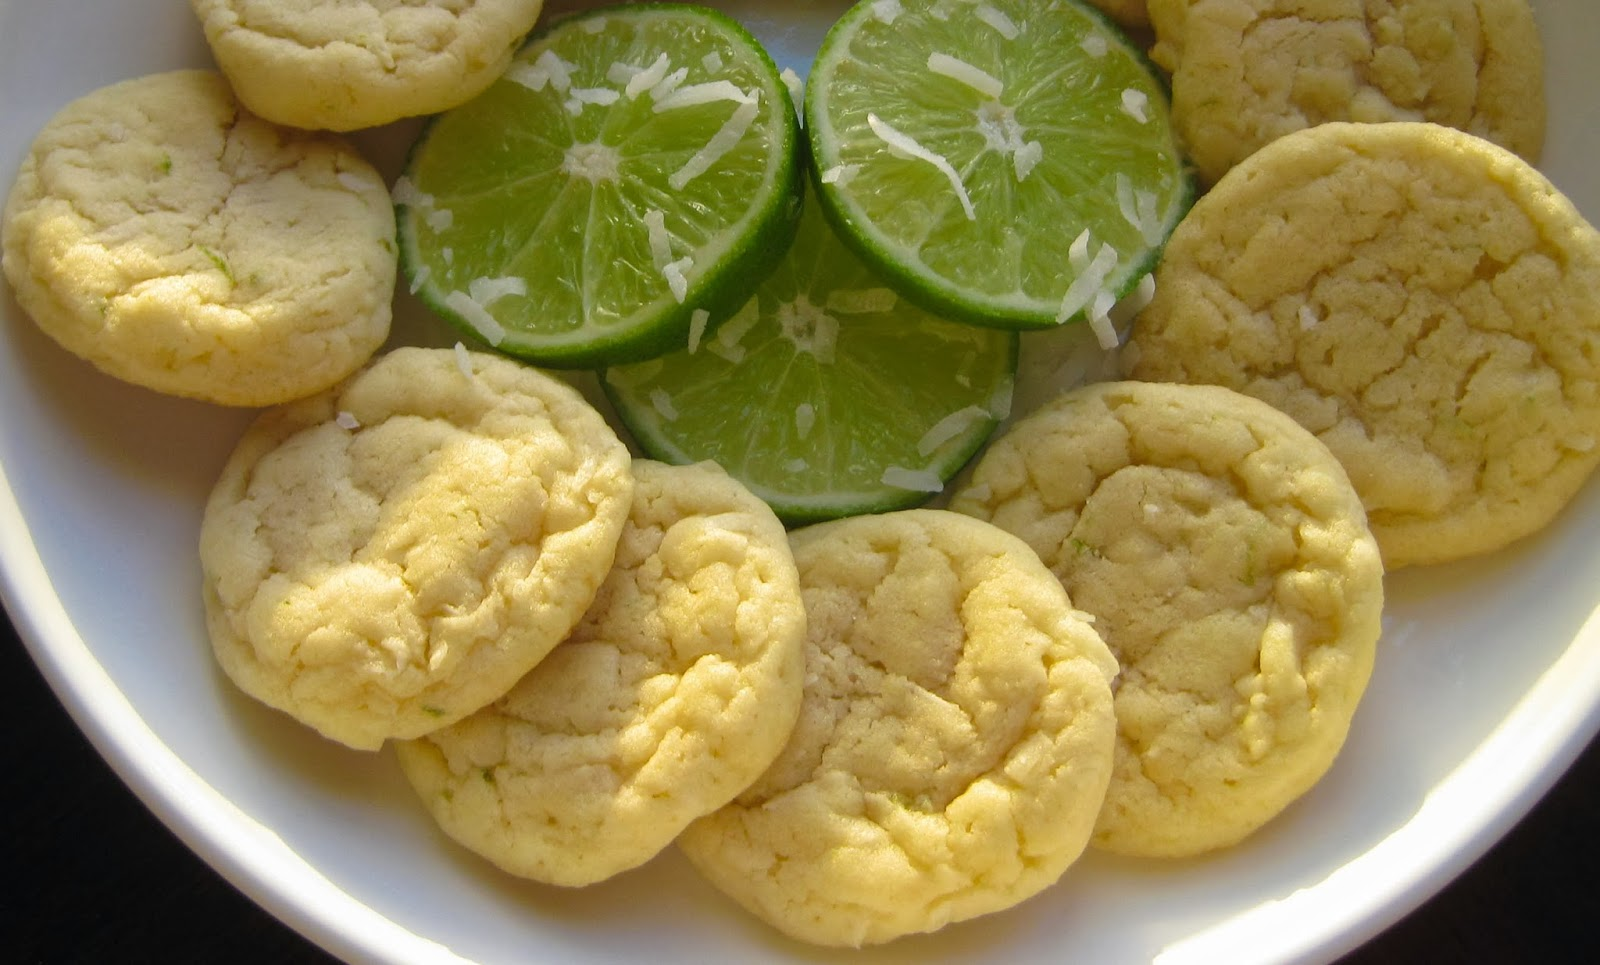 ... Vegetarian Food Blog: Coconut-Lime Sugar Cookies - Blogger Cookie Swap